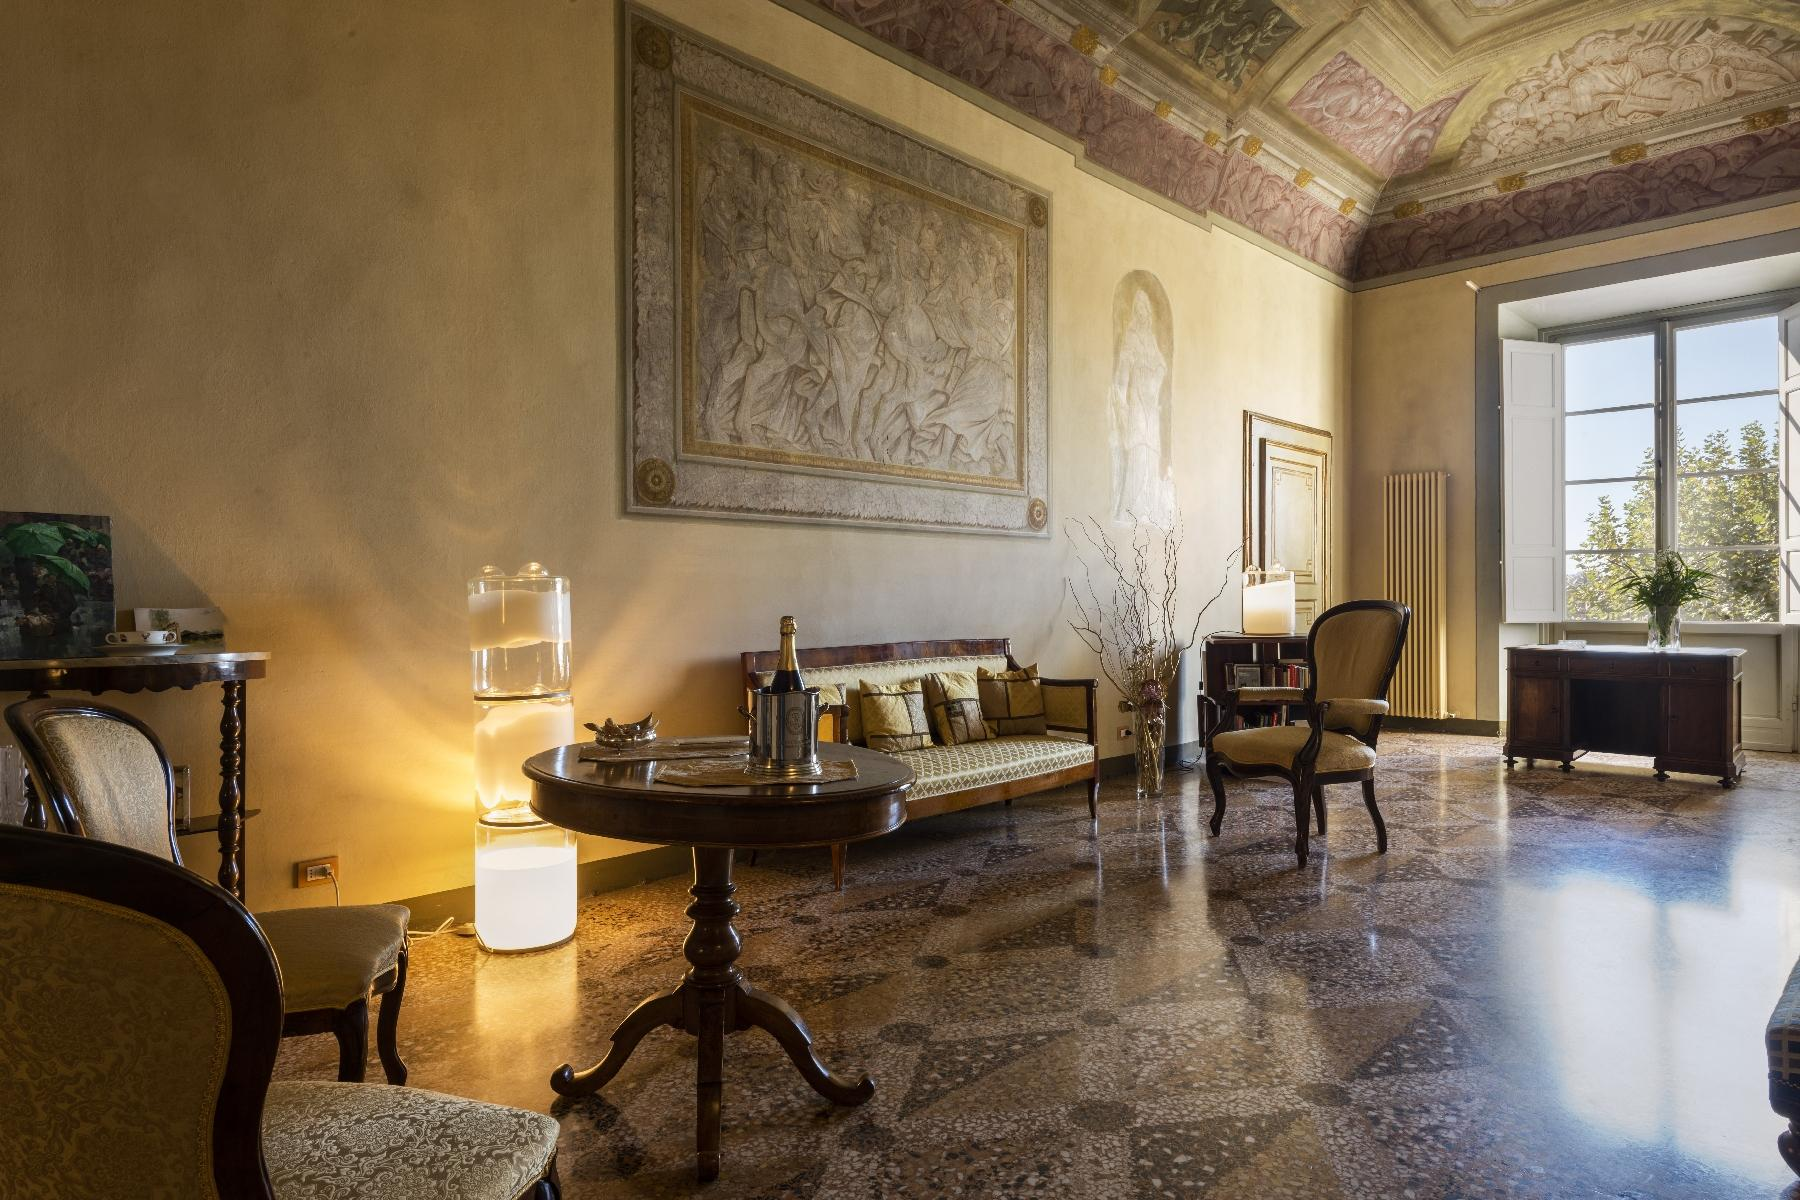 Stunning 18th century villa in the heart of Tuscany - 10